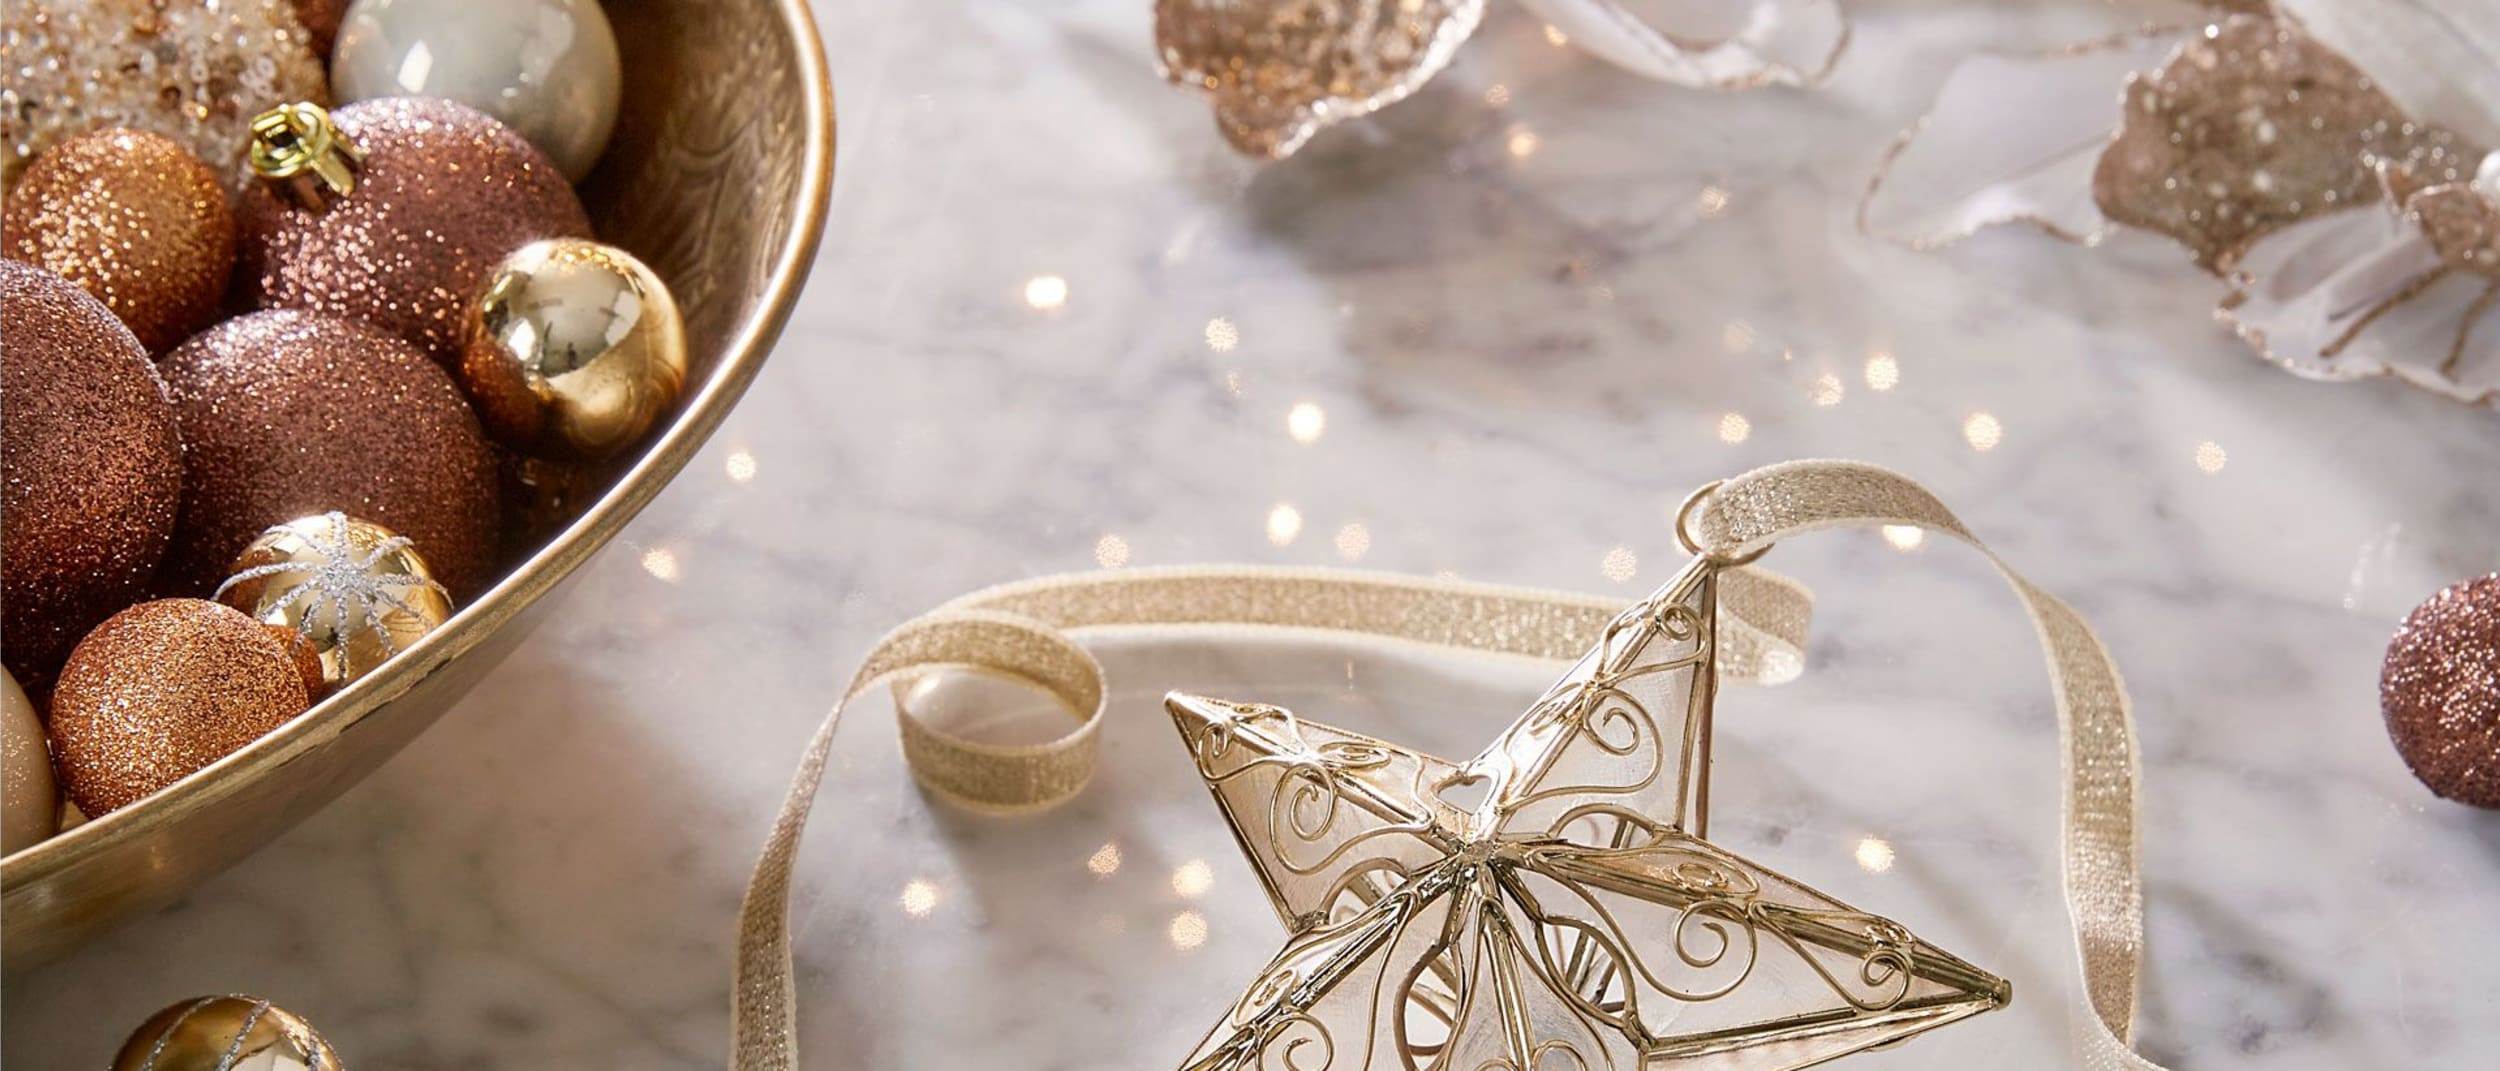 Bed Bath N' Table: Christmas range